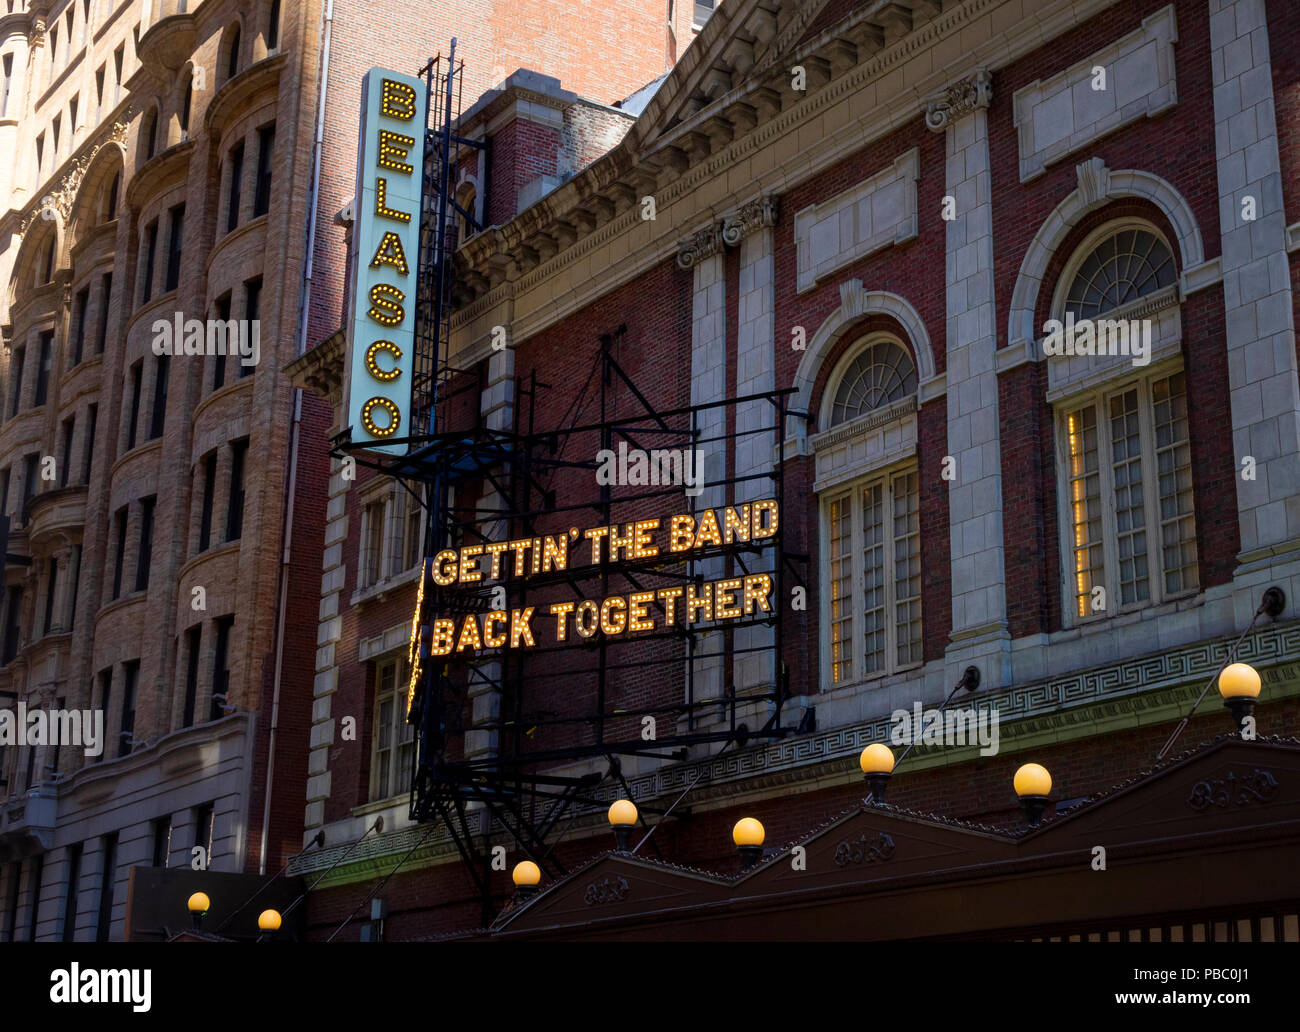 Gettin' the Band Back Together on Broadway, a musical at the Belasco Theatre - Stock Image